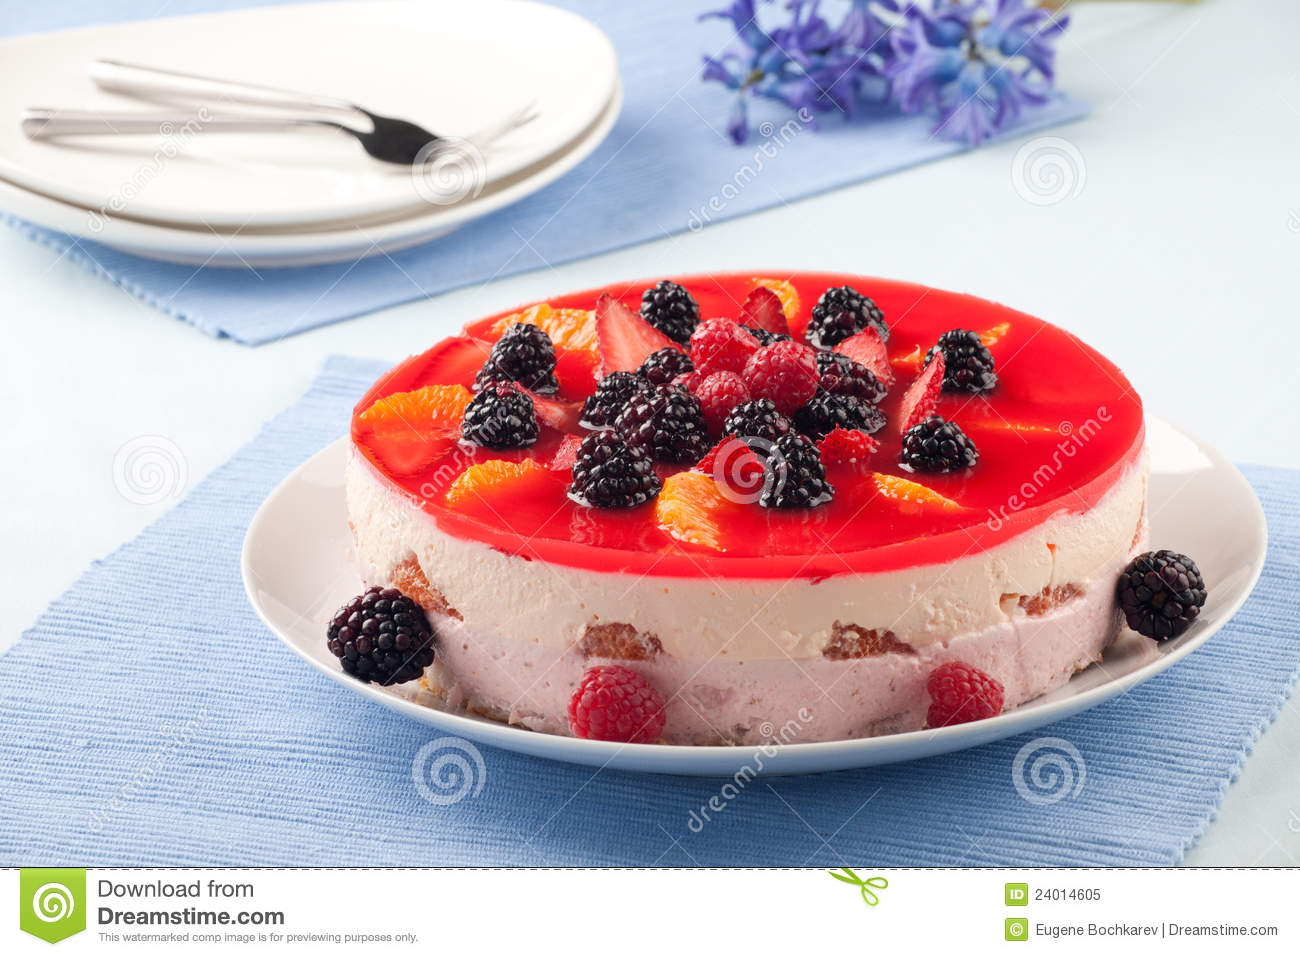 Cake With Fruit Yogurt : Fruit Yogurt Cake Royalty Free Stock Photo - Image: 24014605